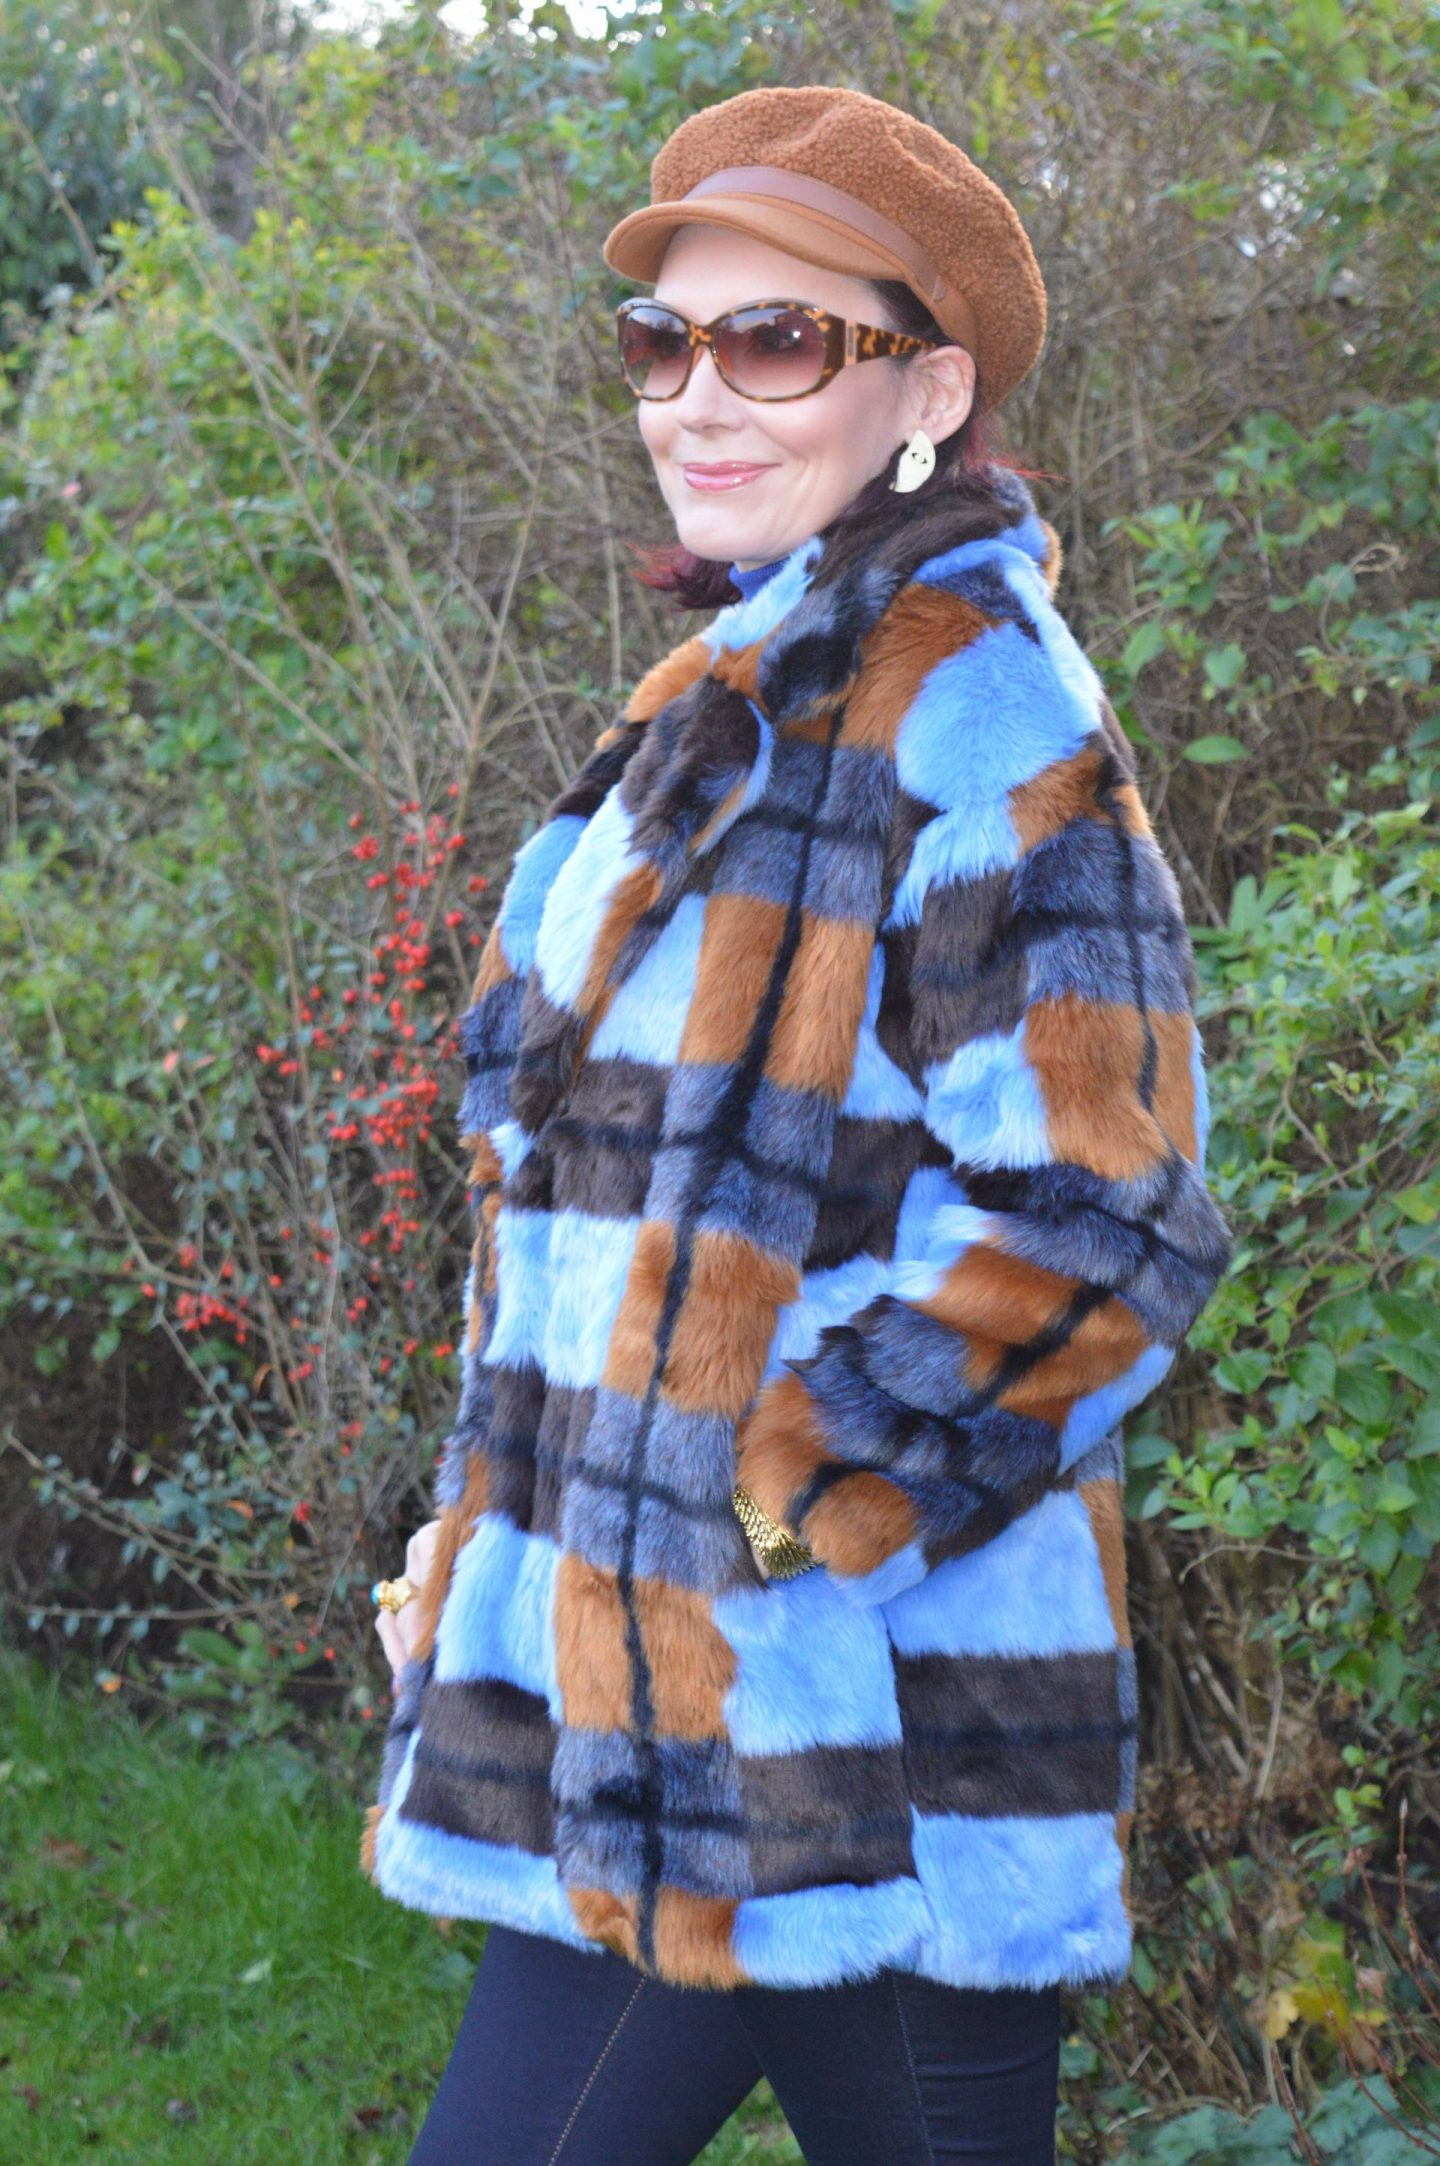 New Year Cozy Chic, Asos faux fur coat, Marks & Spencer brown baker boy hat